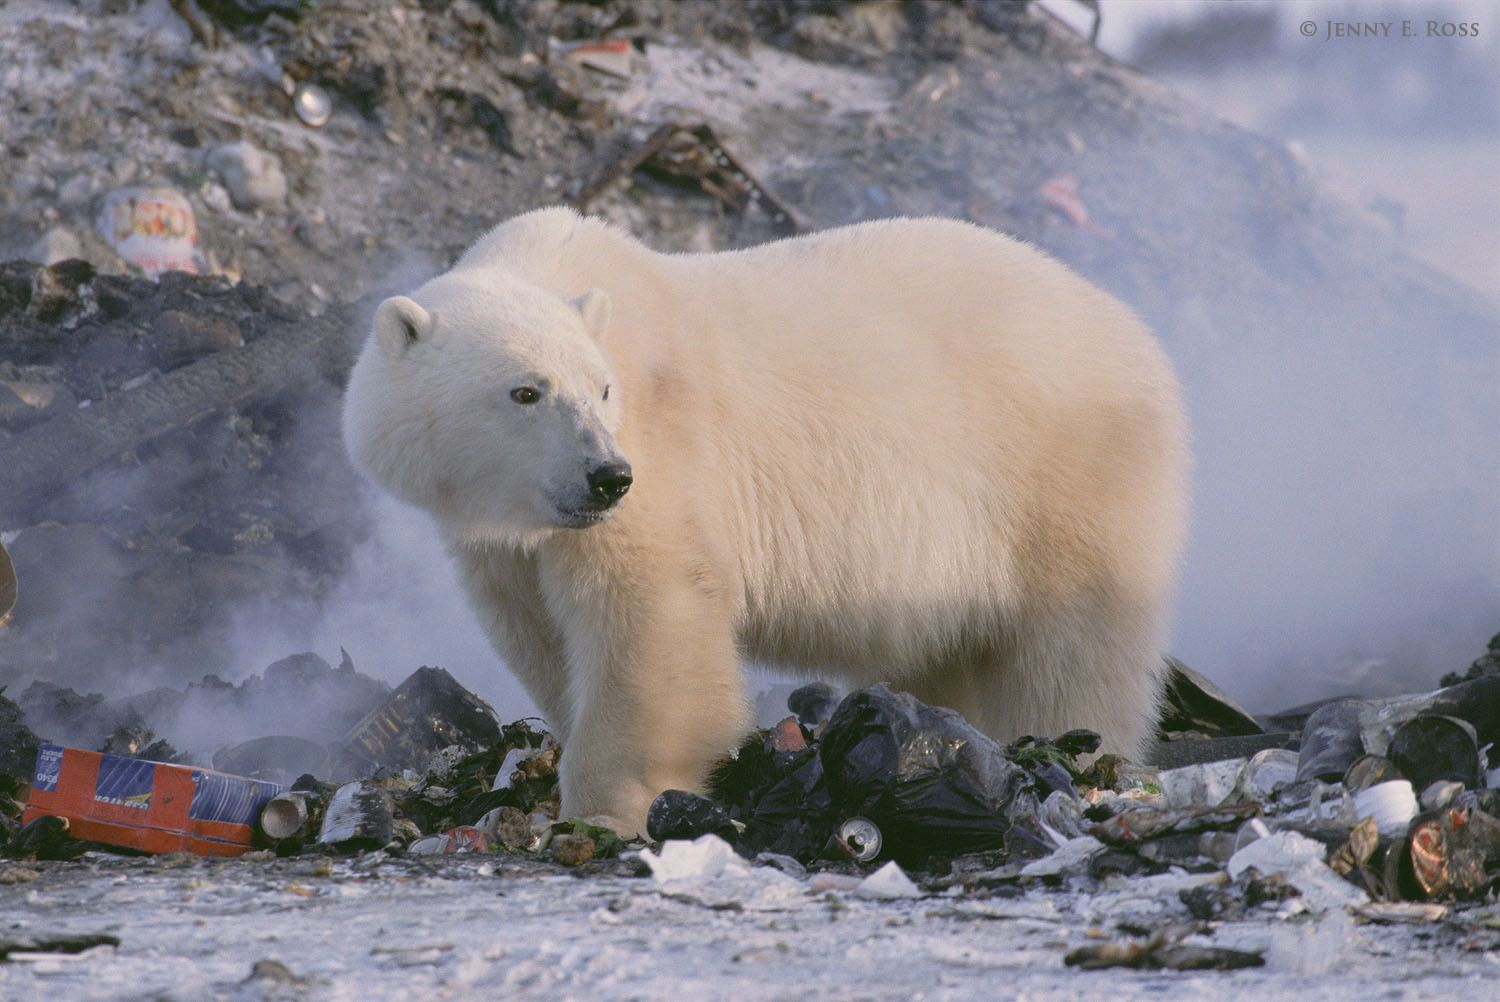 Stranded on land and unable to hunt seals due to a lack of sea ice, a polar bear forages for something to eat in a garbage dump.